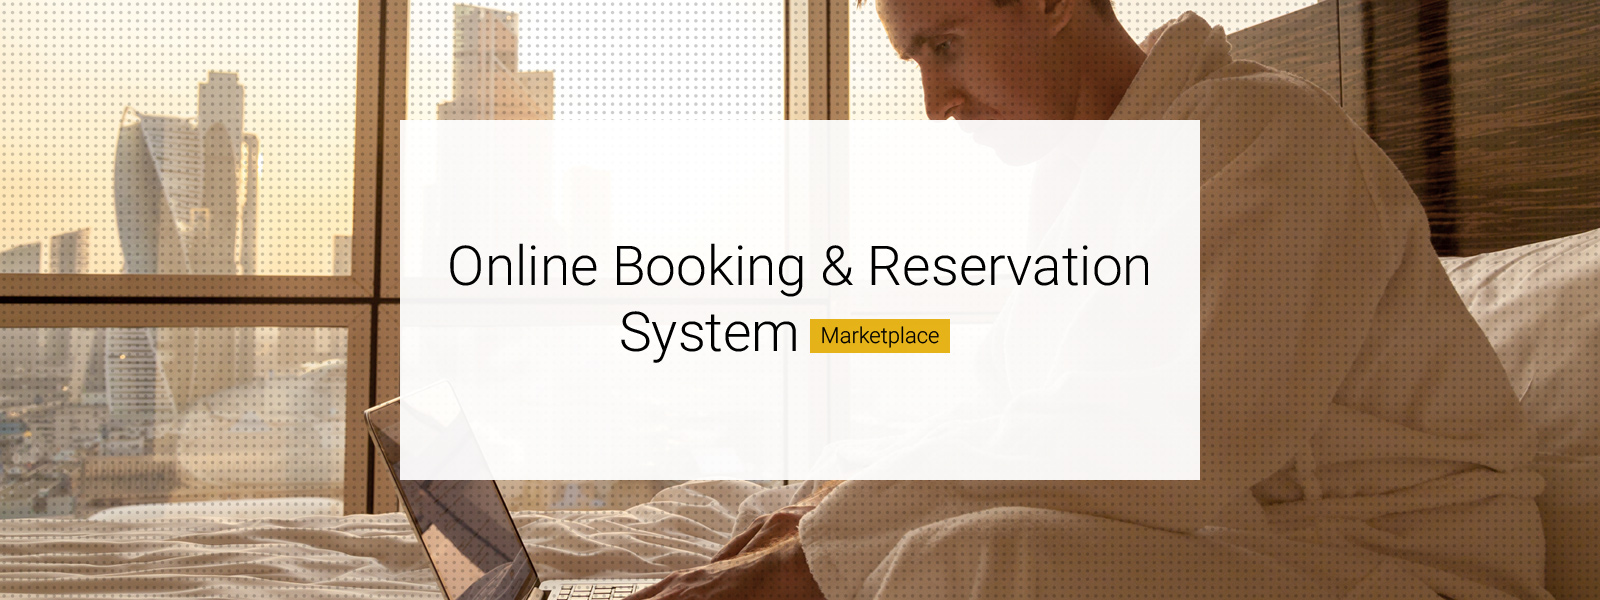 marketplace booking